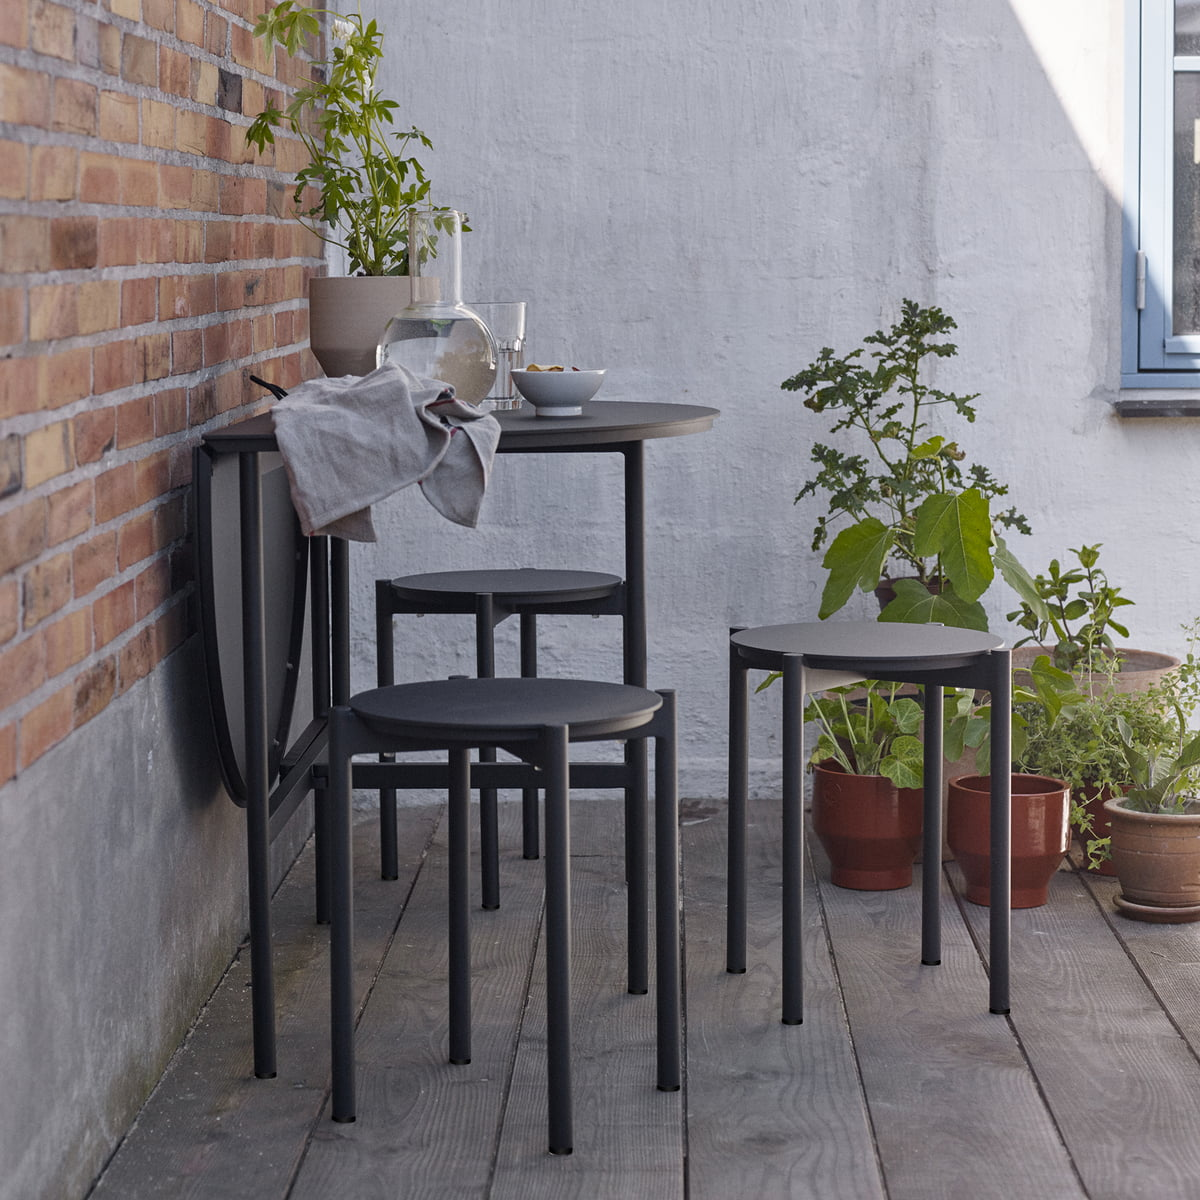 The Skagerak   Picnic Table And Picnic Stool In Anthracite In The Garden